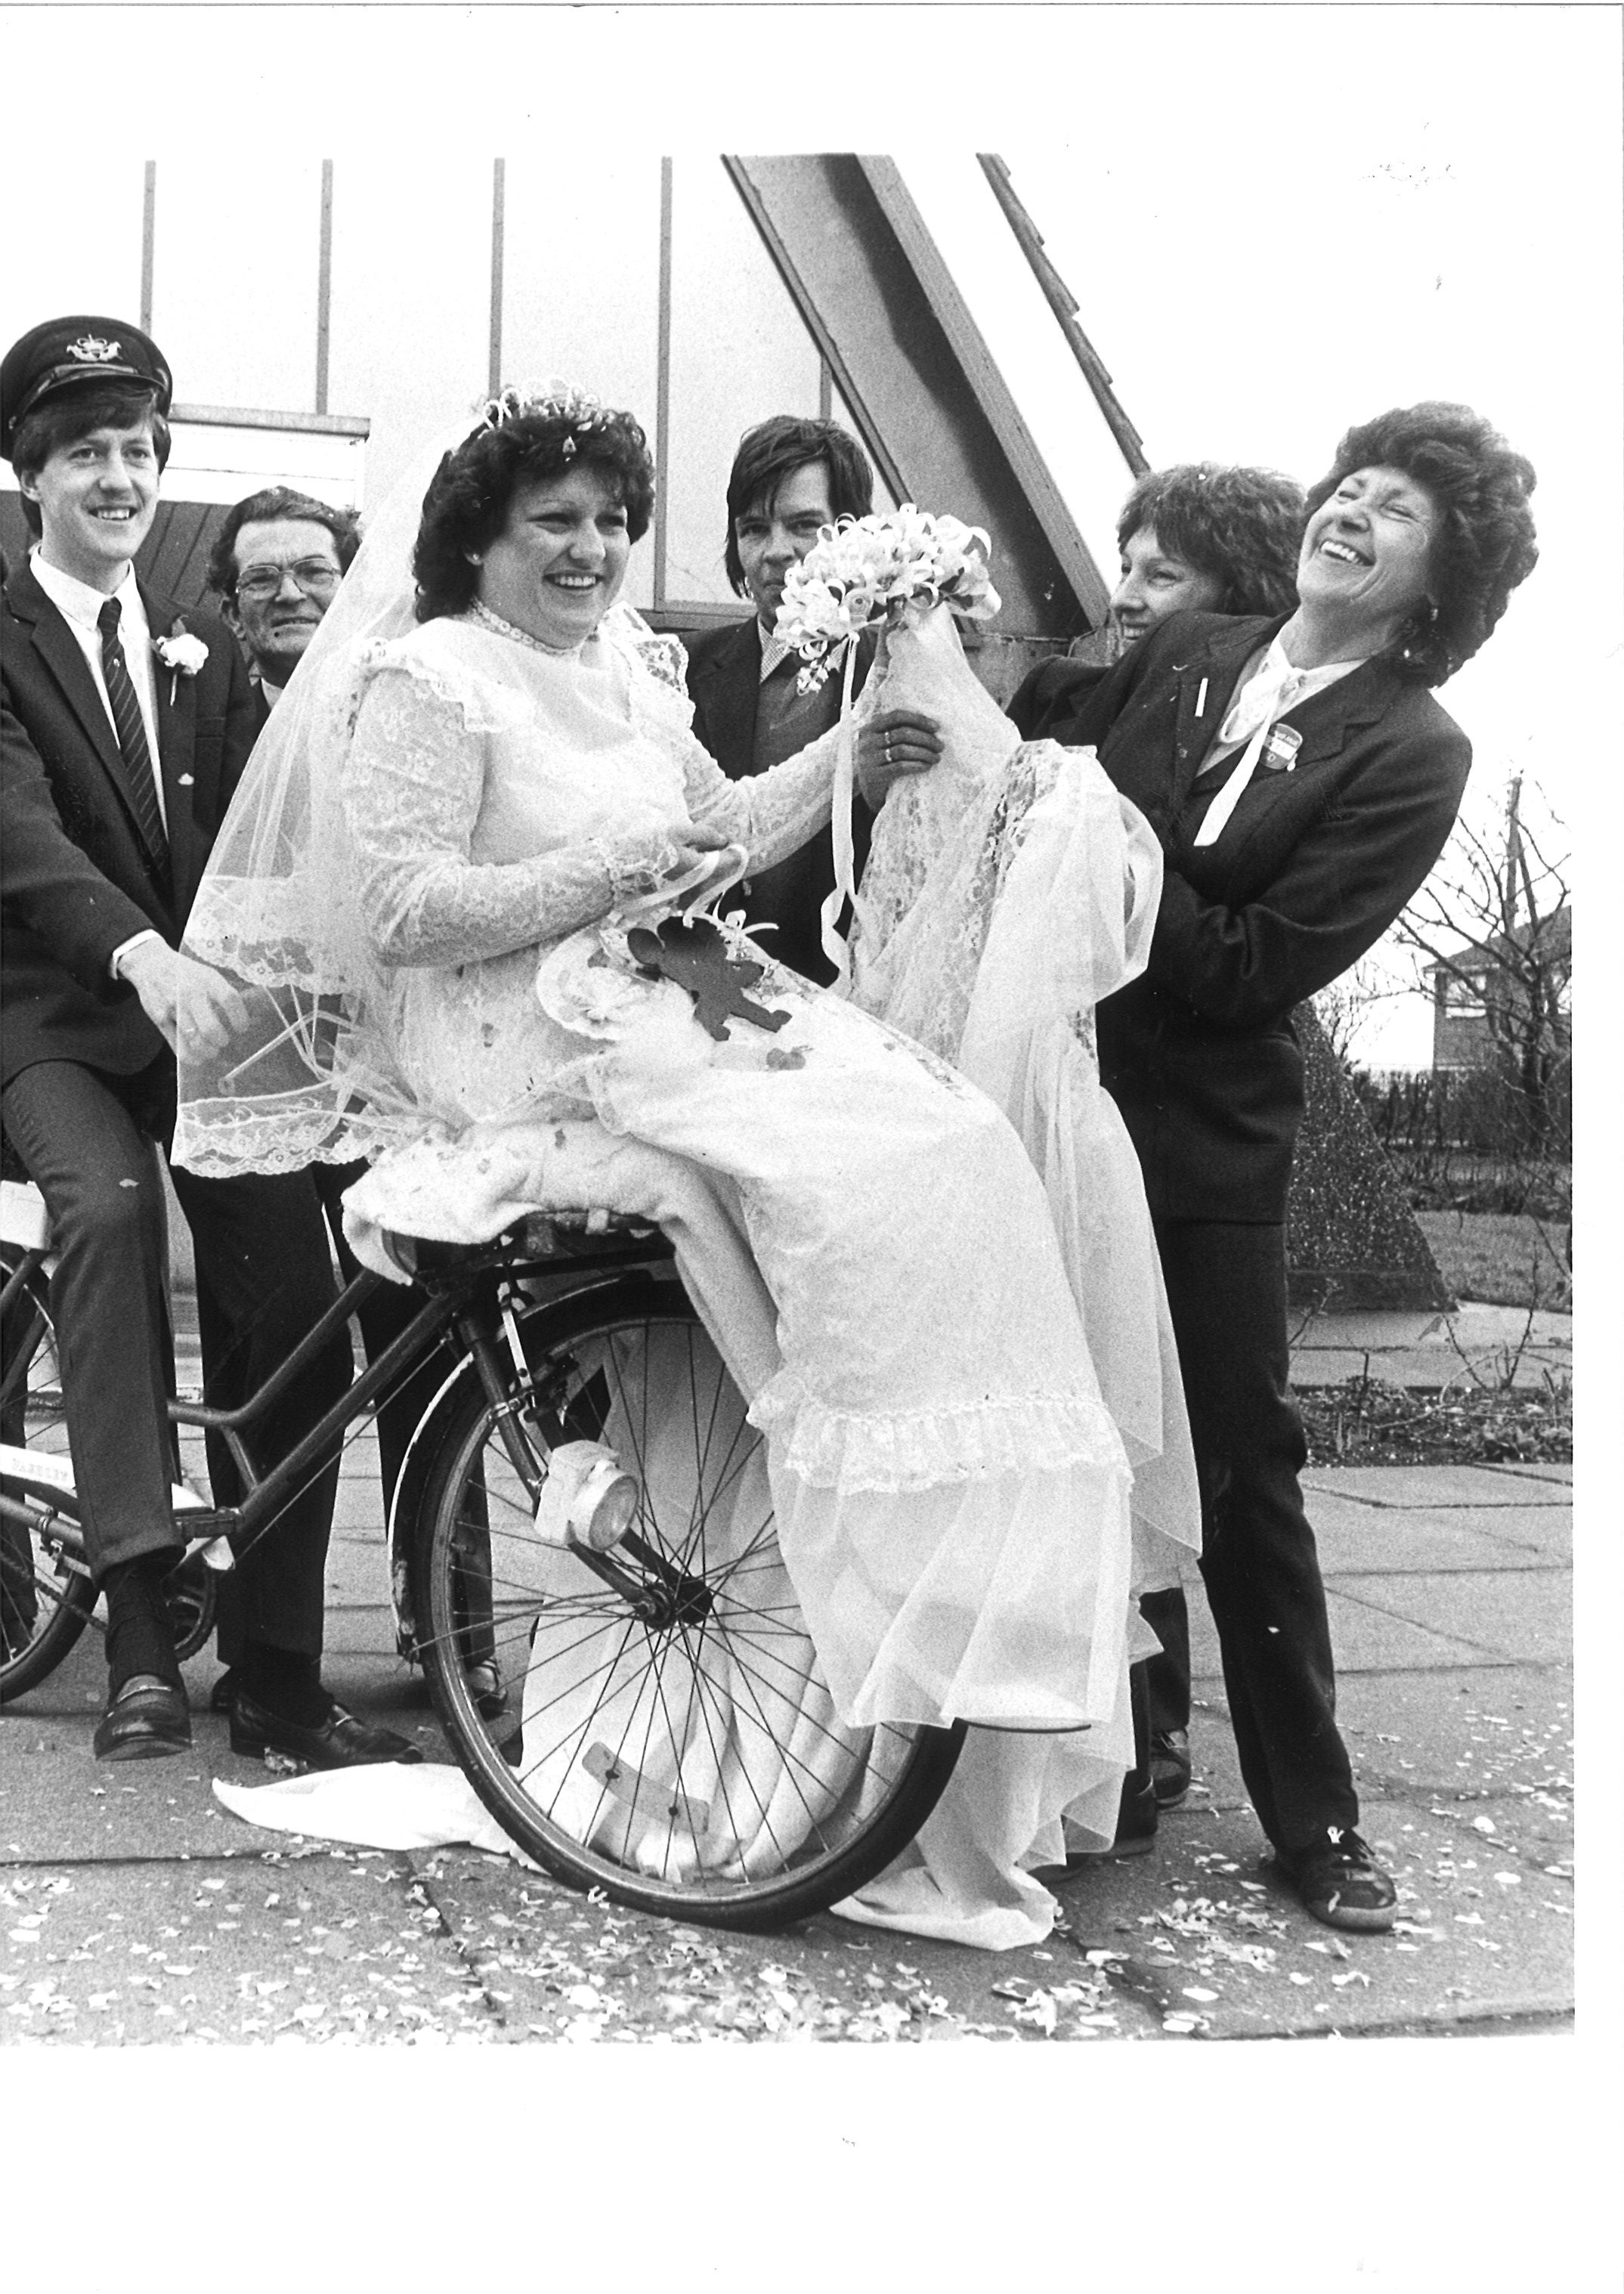 Happy - Colin May married Jane Stanlake at St Nicholas Church, Canvey, in February 1984 and he emerged from the church to find his fellow posties had formed a surprise guard of honour with their bicycles